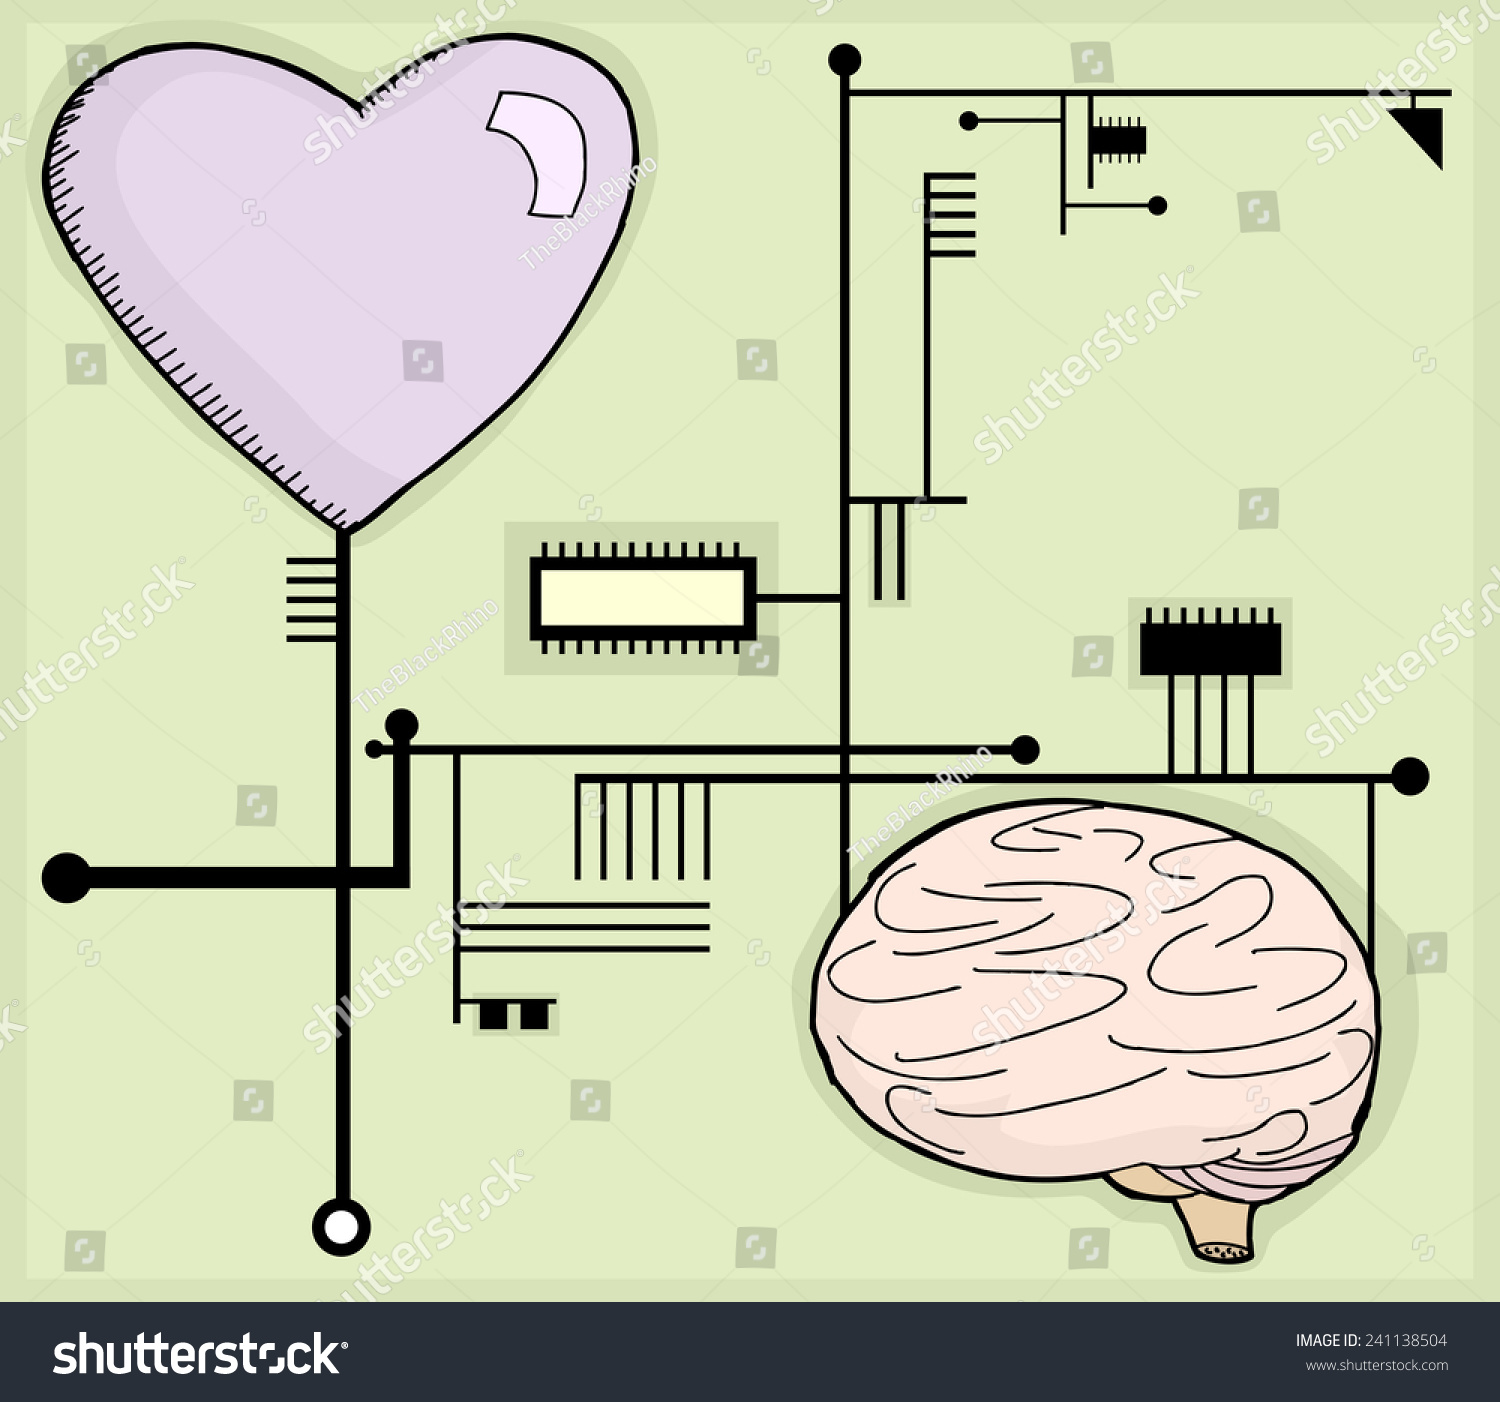 Schematic Circuit Cartoon Wiring Library Fuse Box Heart And Brain Connected To Computer Circuits